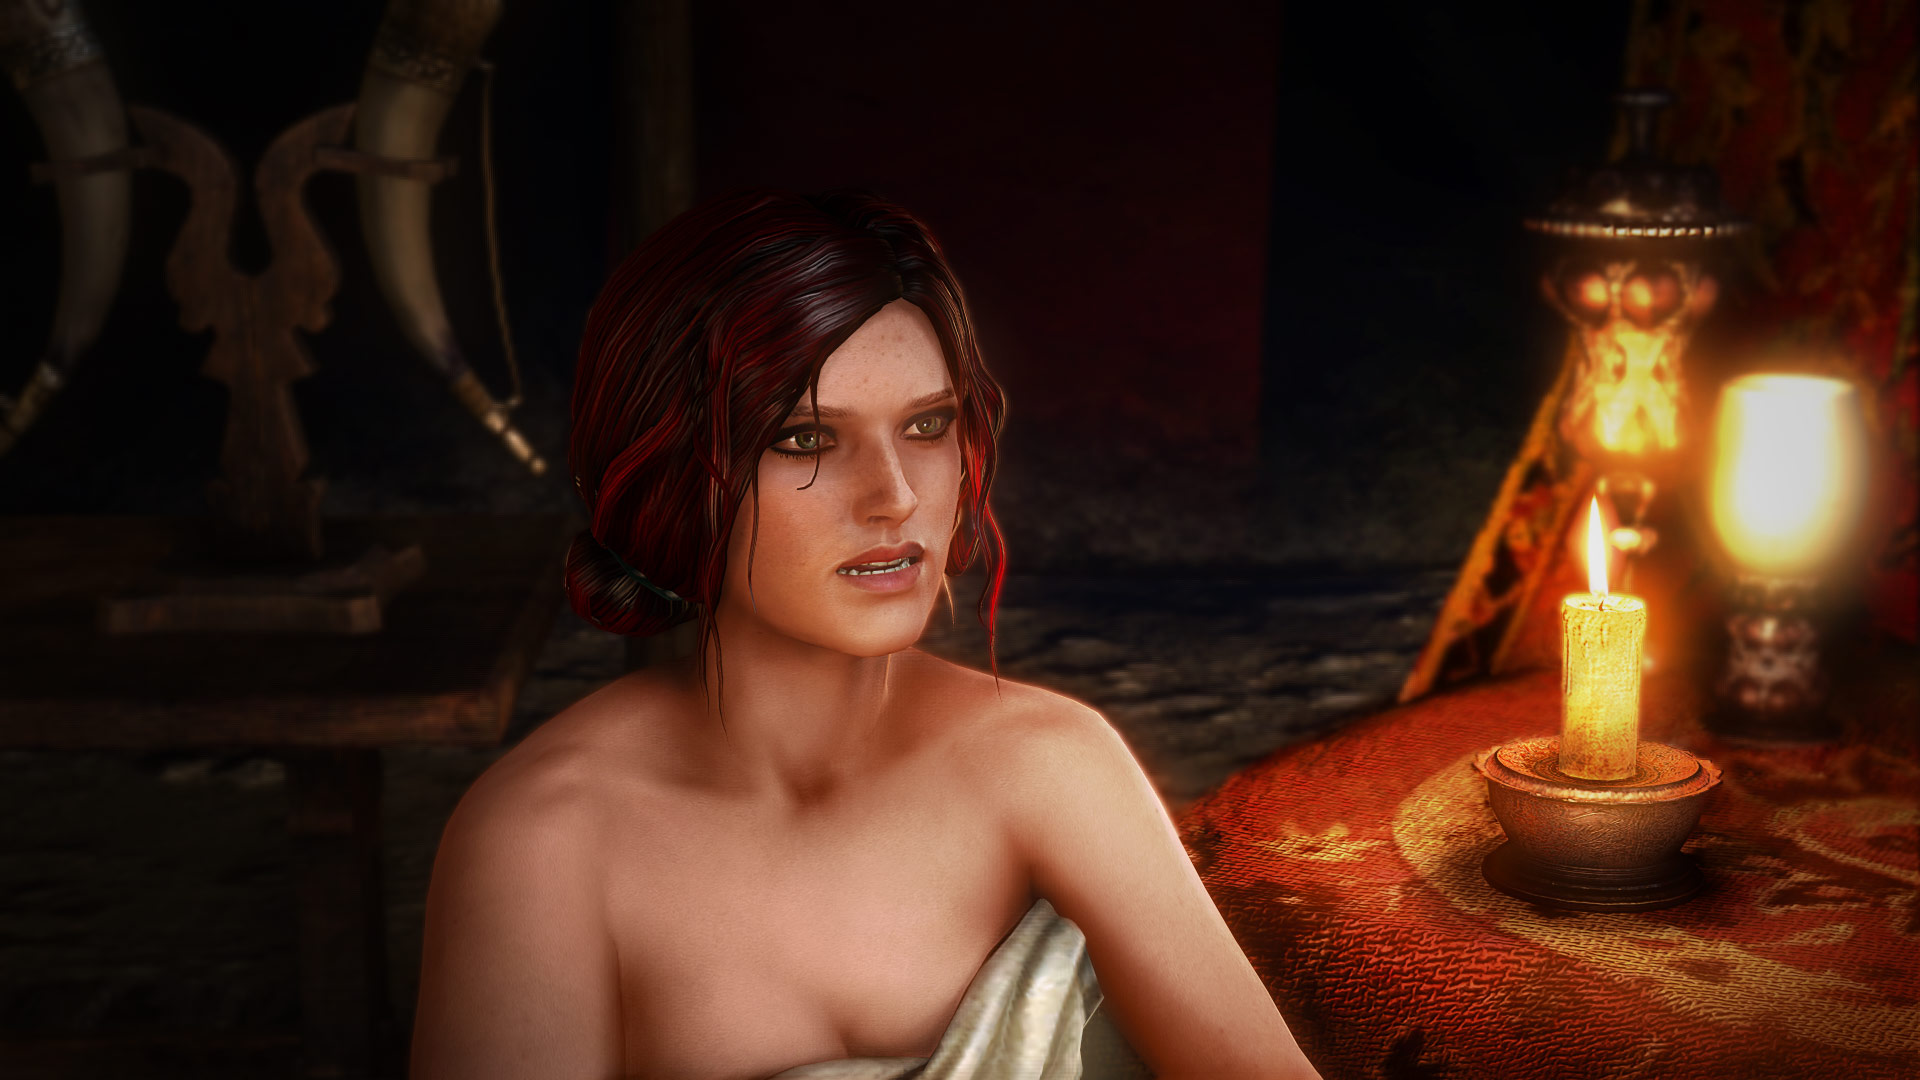 The Witcher 2's  most important female character, Triss, is introduced entirely naked. Geralt, in the same scene, is conveniently given pants.